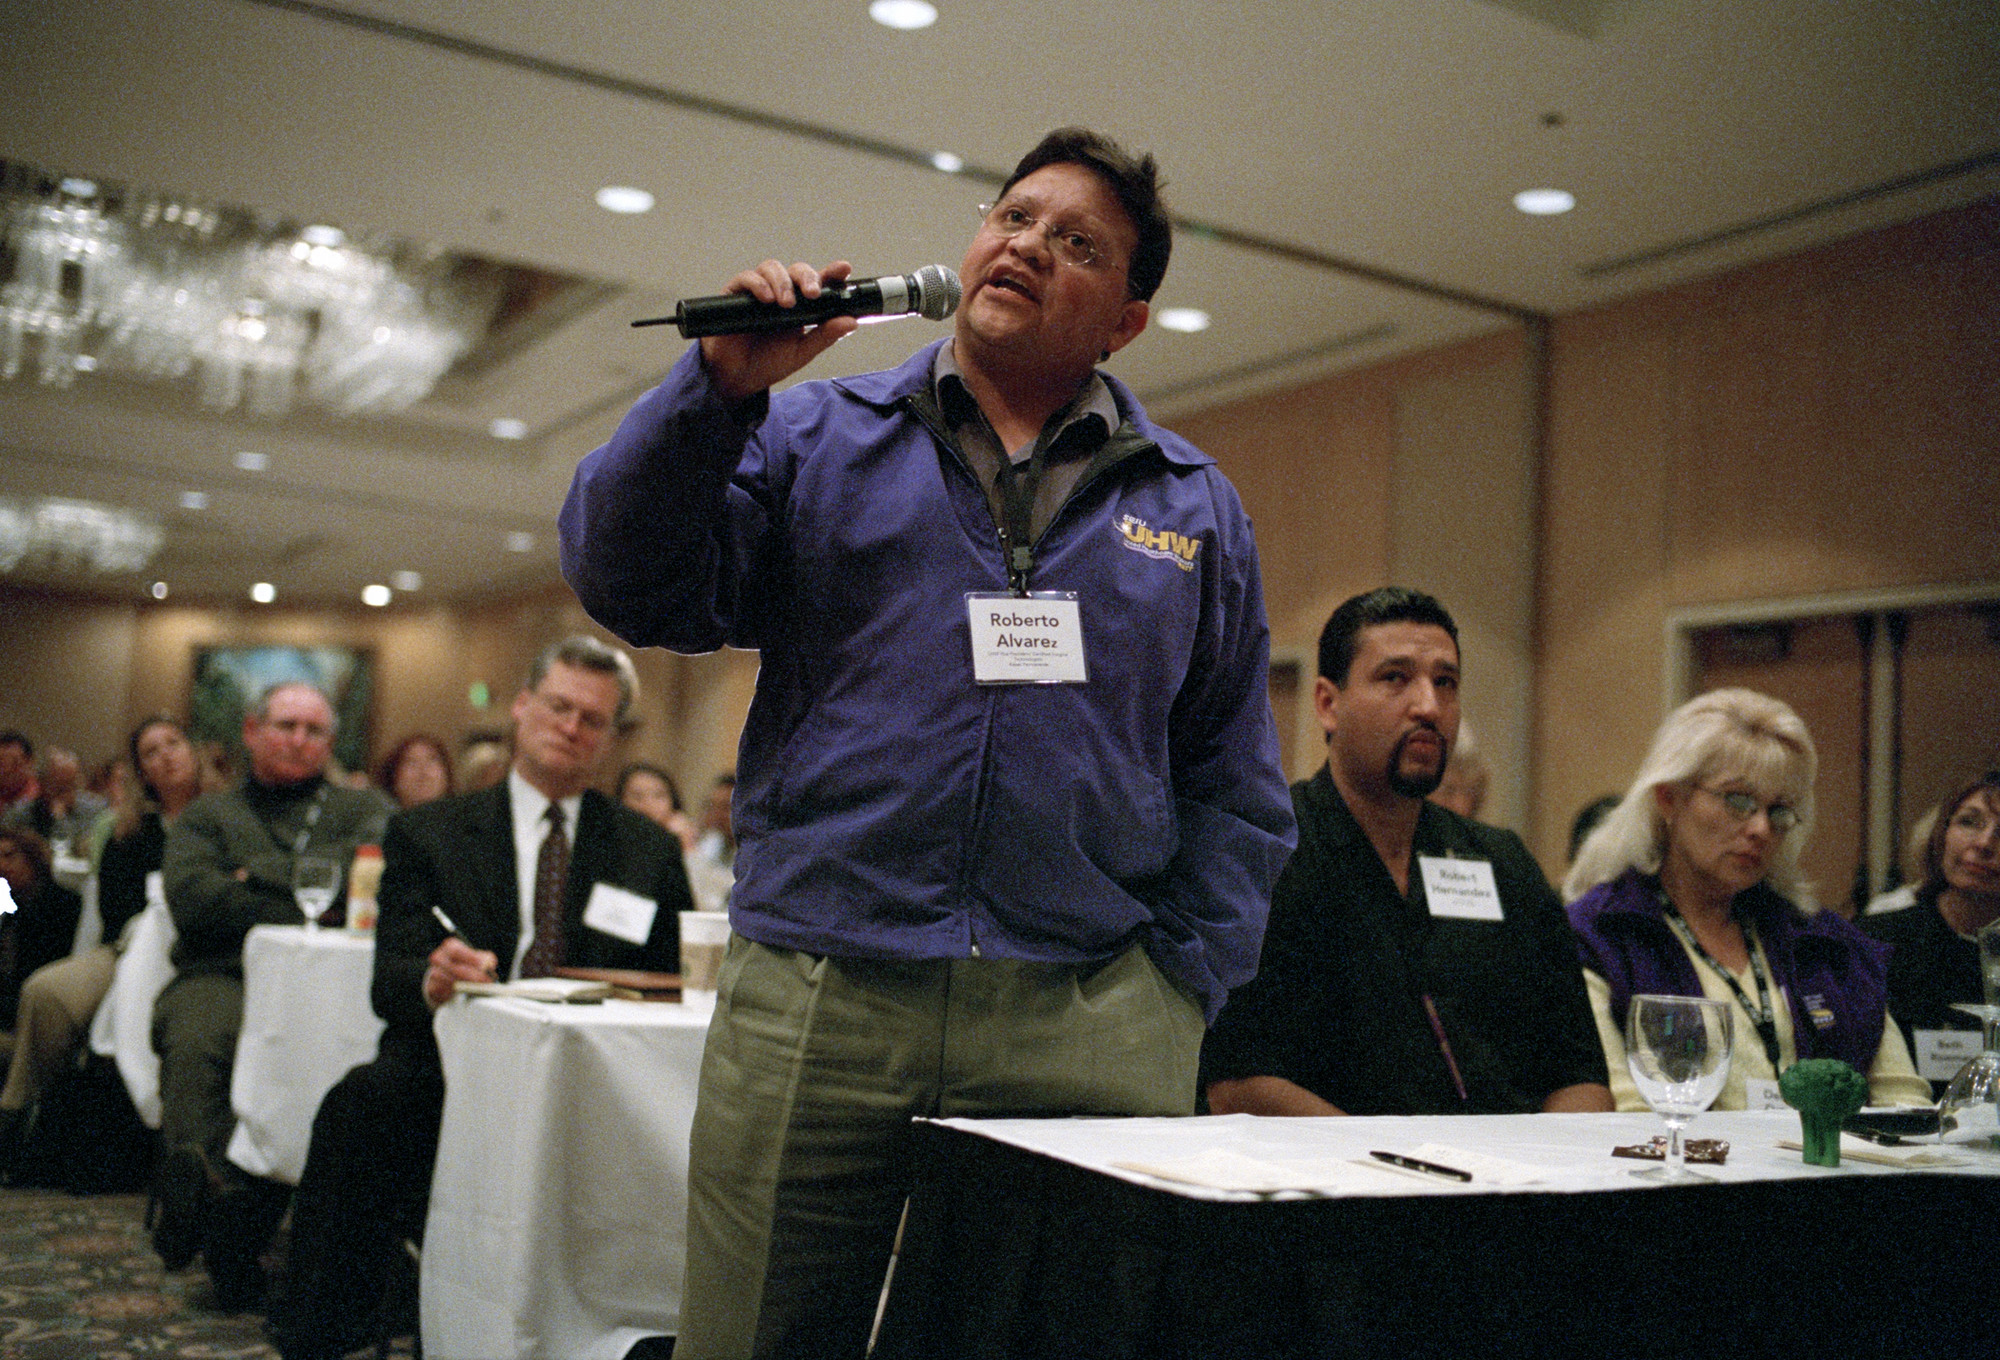 A UHW member (wearing purple jacket) speaks into a microphone